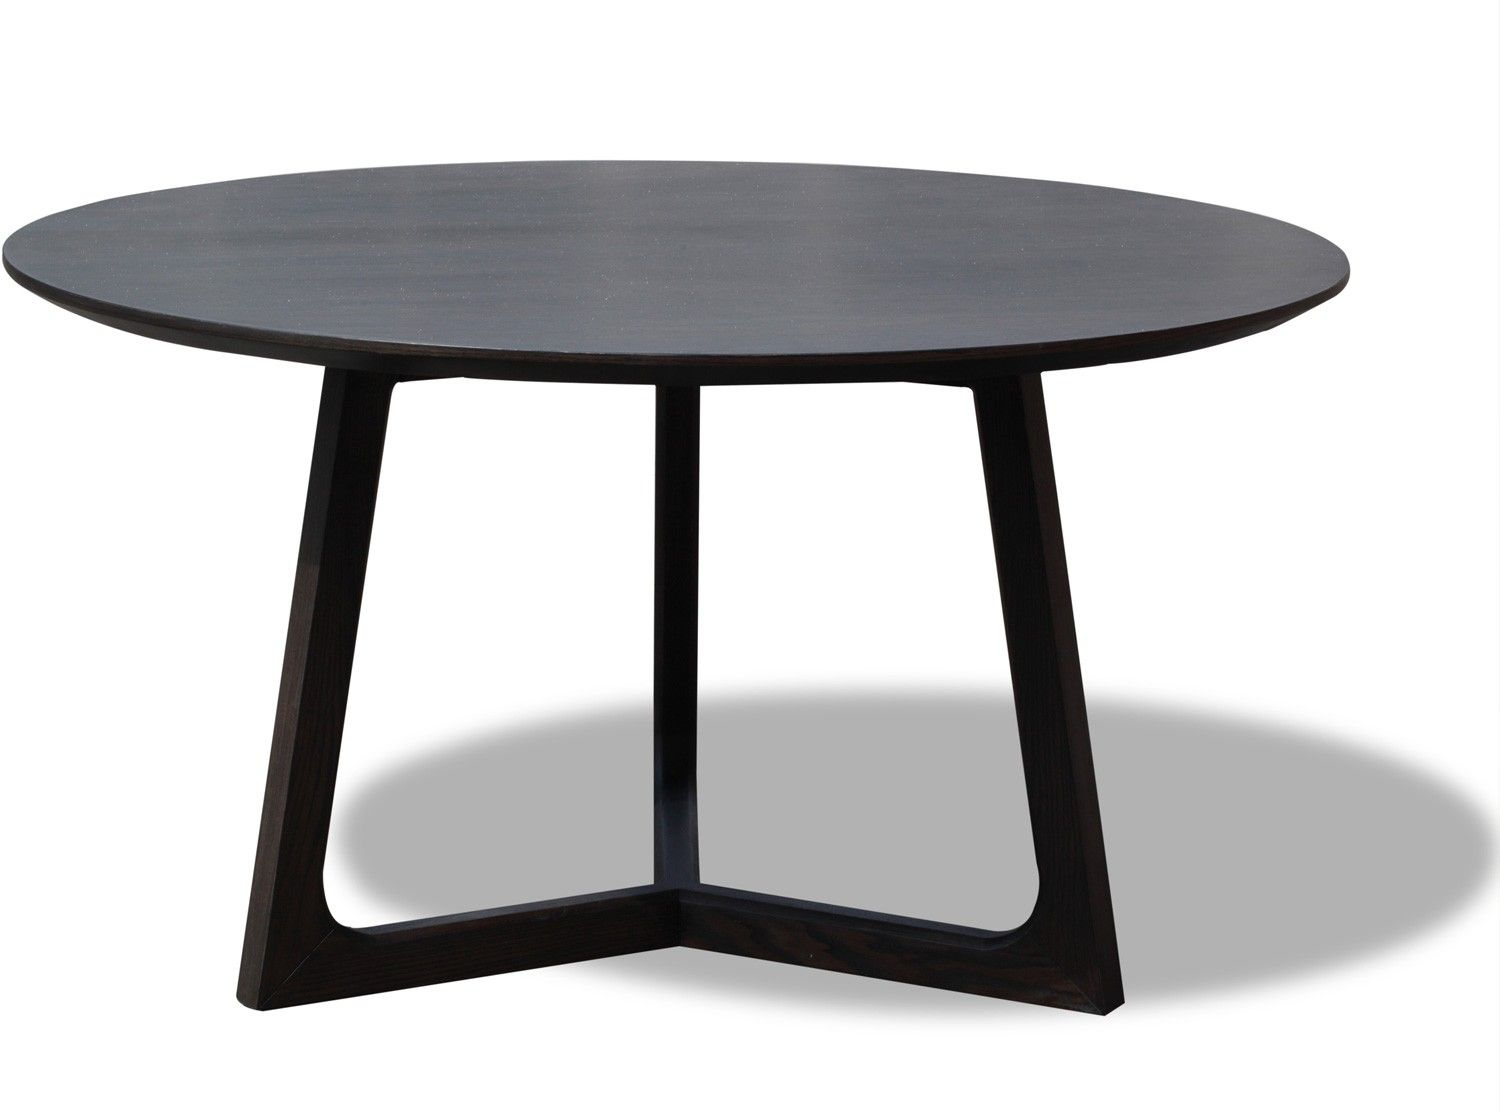 Poliform Timber Round Table Google Search Round Dining Table